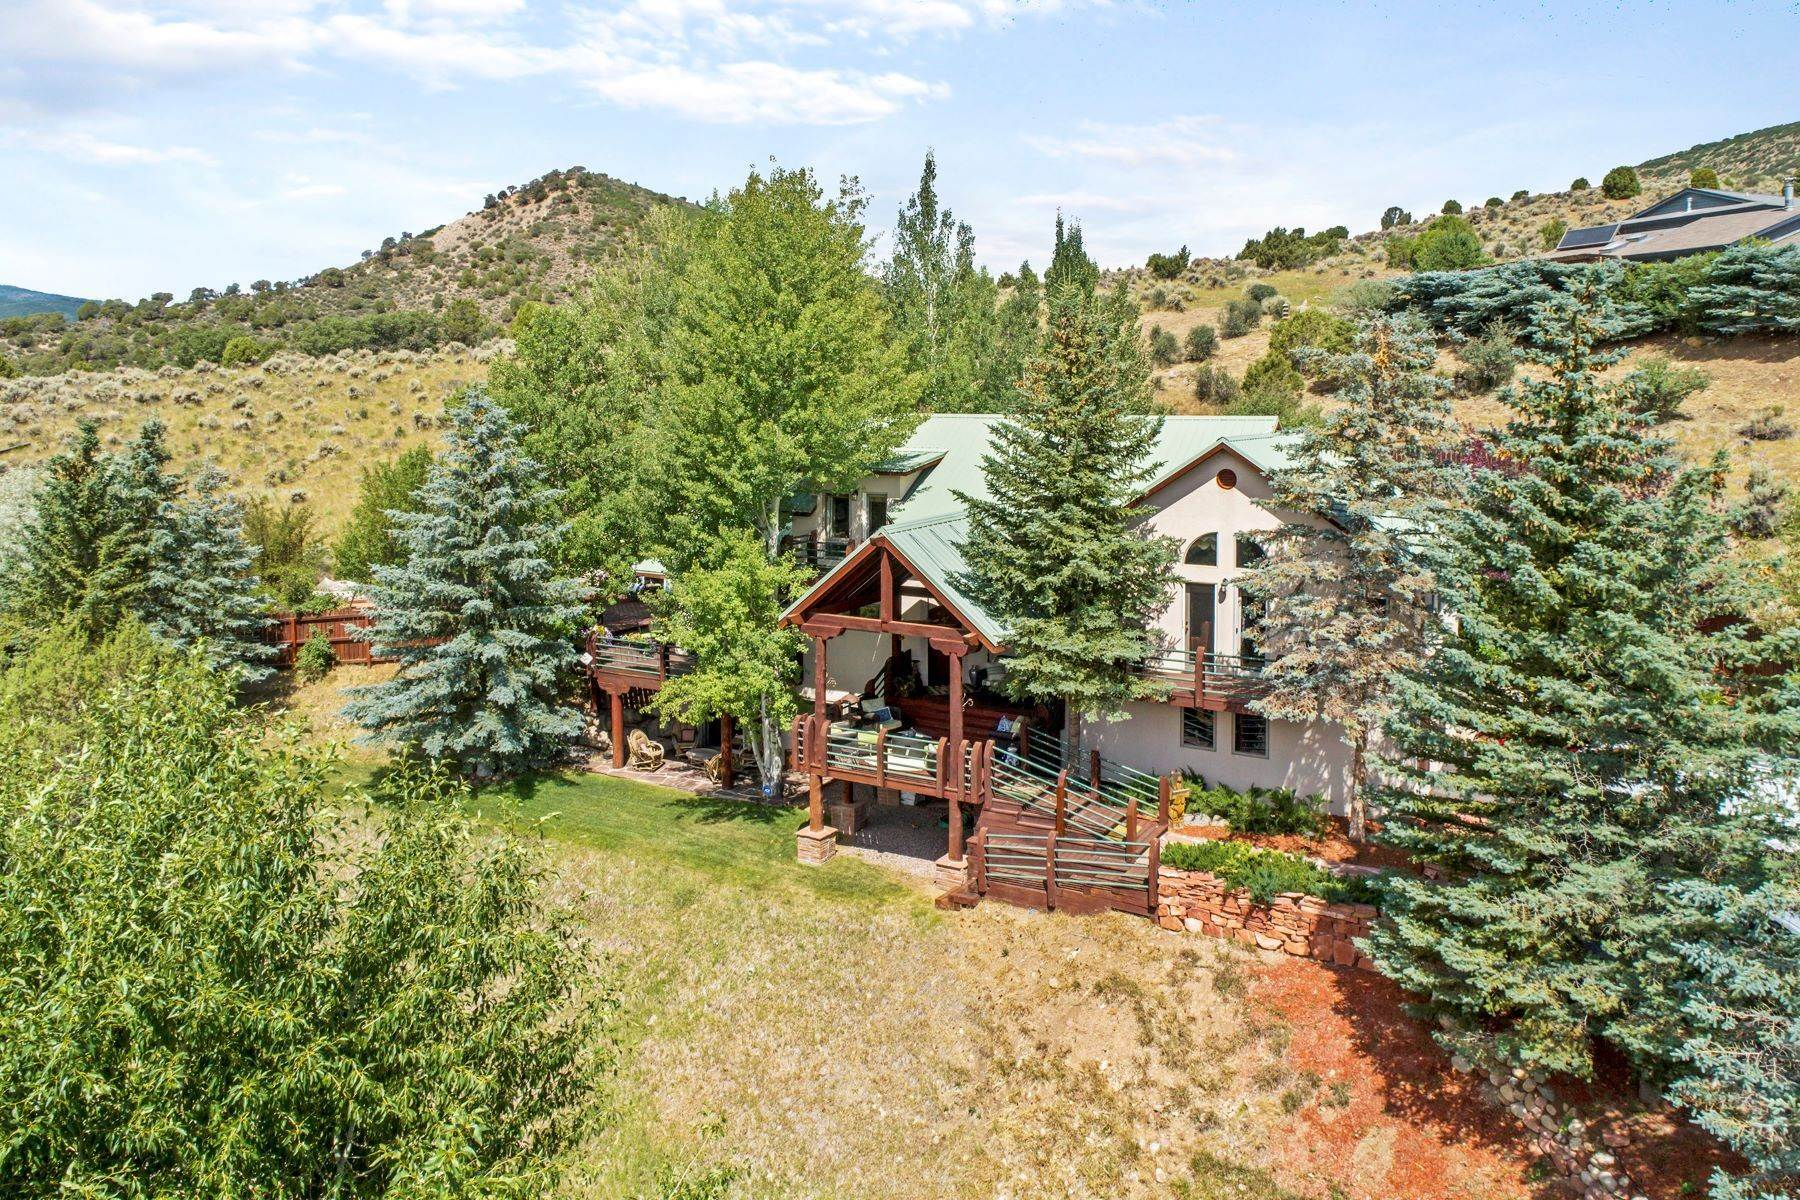 Single Family Homes for Sale at Gateway to Serenity 189 Light Hill Road Snowmass, Colorado 81654 United States